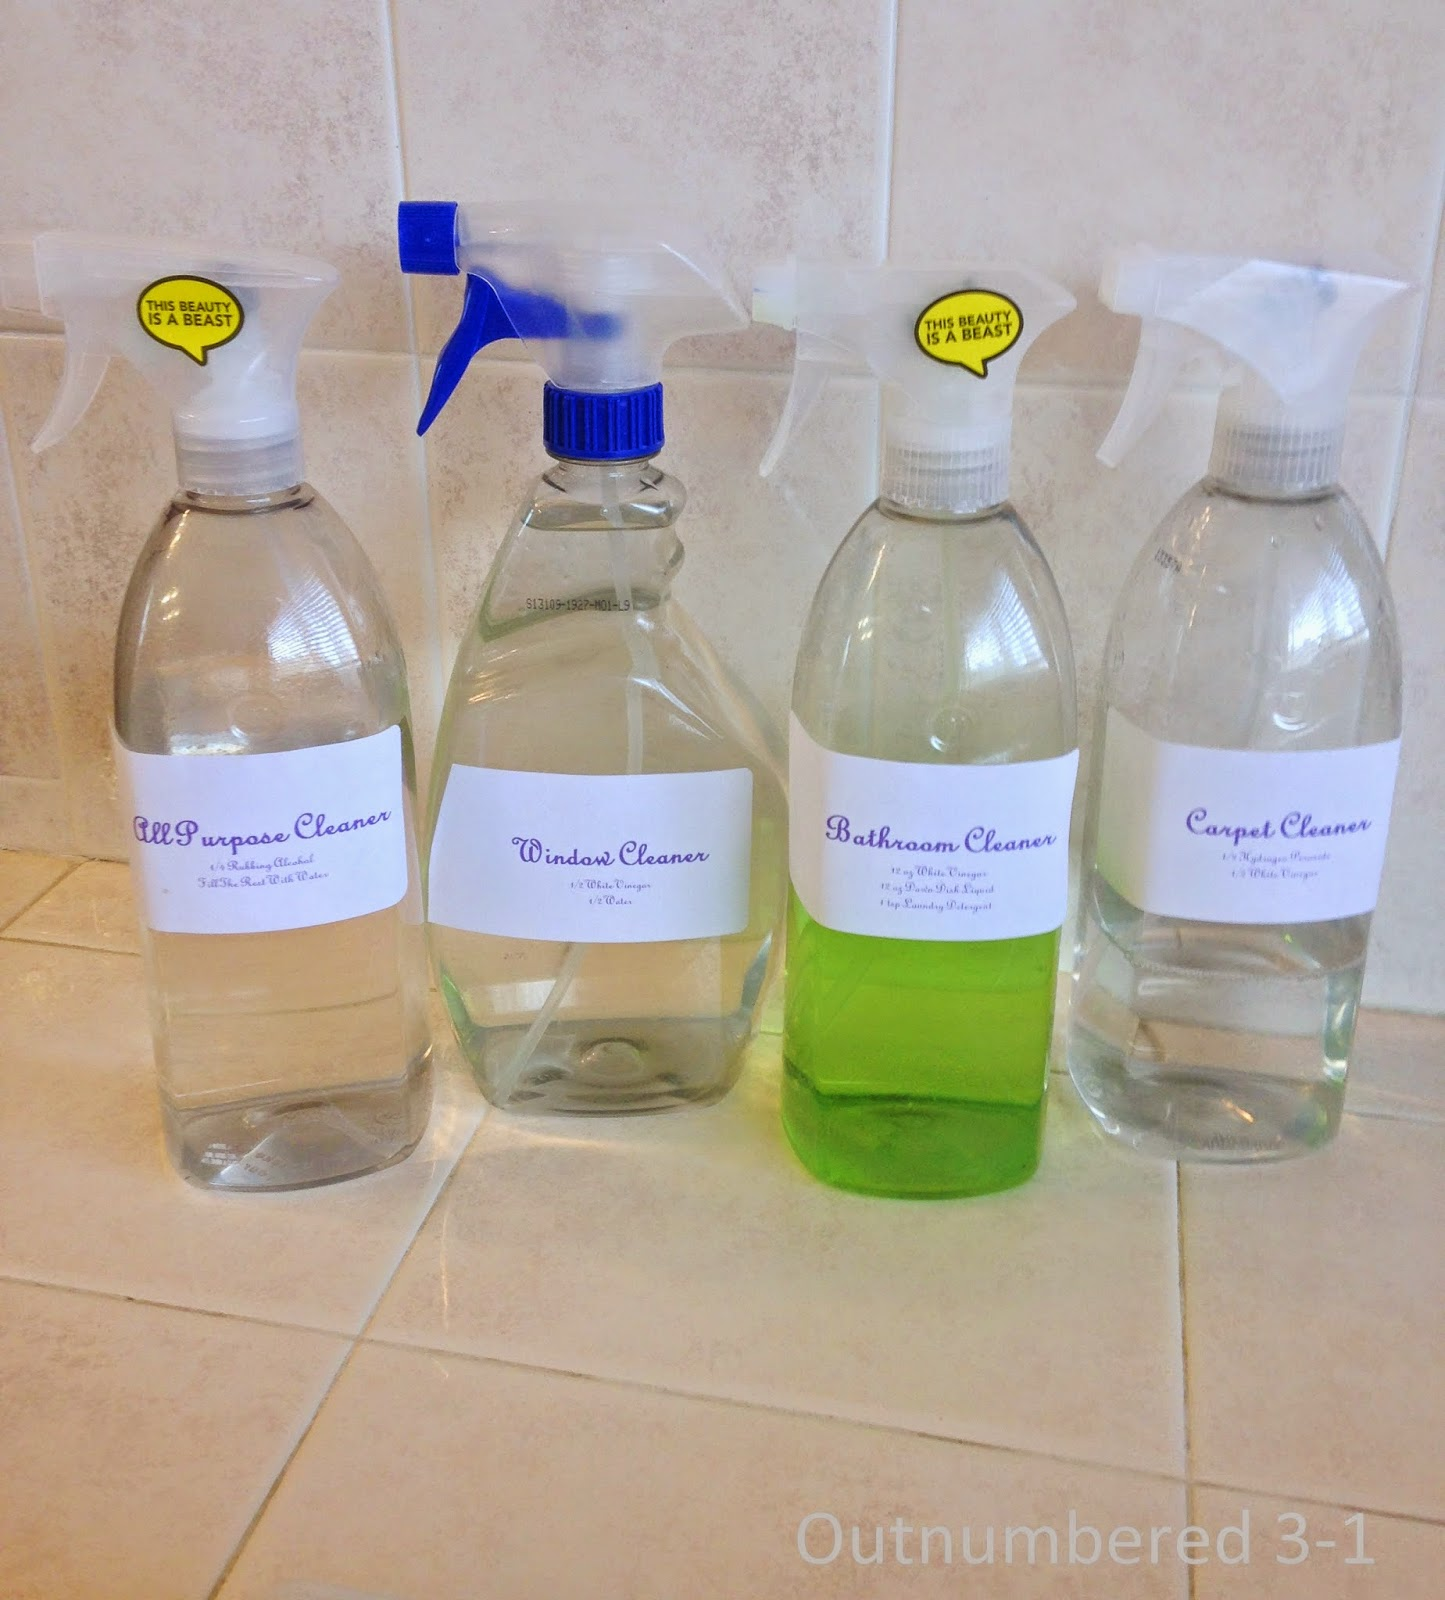 DIY Non-Toxic Bathroom Cleaner, Non-Toxic Bathroom Cleaner, Cleaners, DIY Cleaners